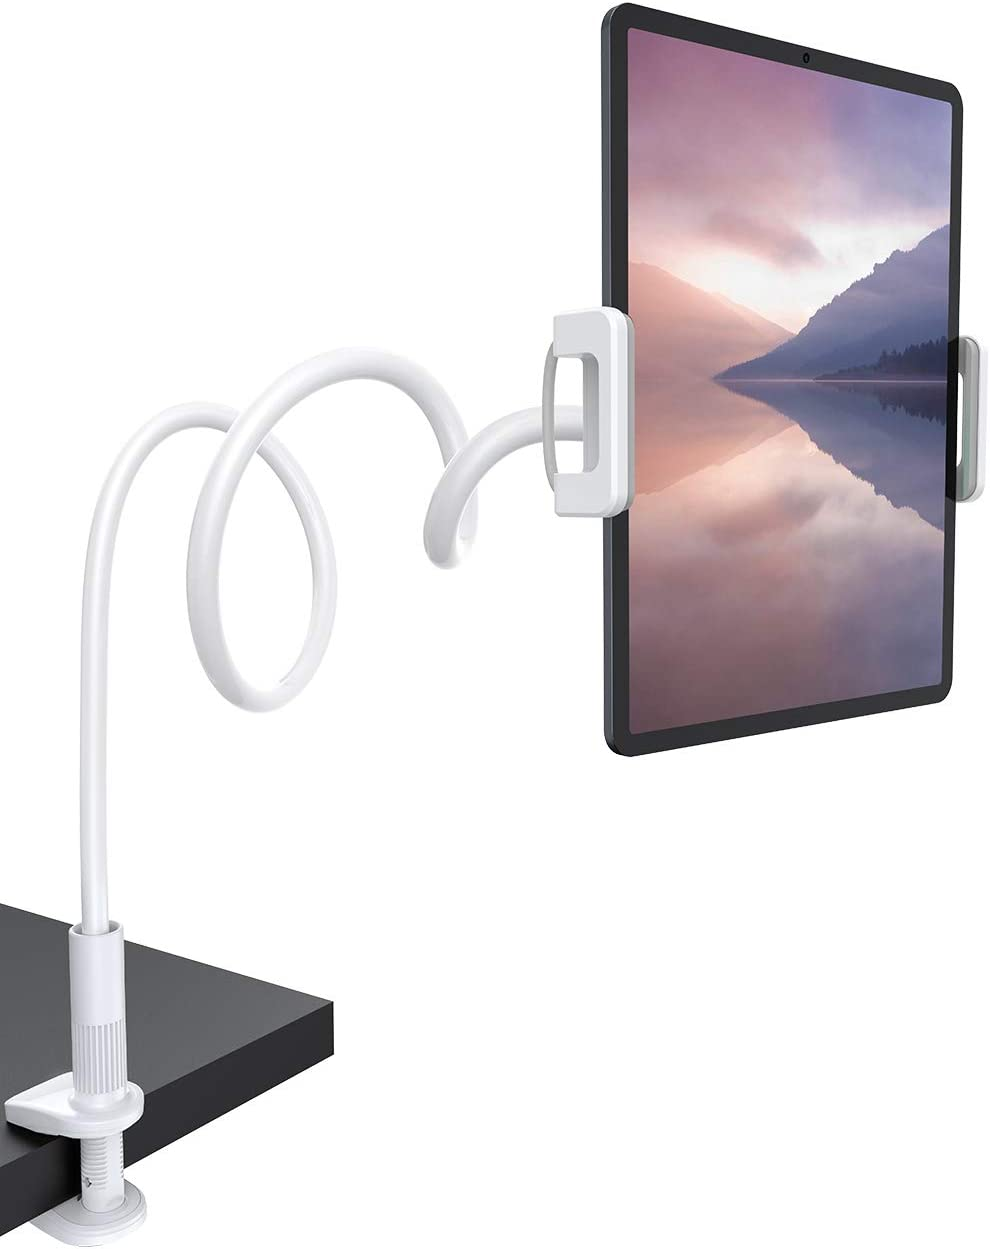 "Gooseneck Tablet Mount Holder for Bed - Lamicall Flexible Tablet Arm Clamp for Bed Compatible with Pad Mini 7.9, Air 9.7, Pro 10.5, Switch, Galaxy Tabs, More 4.7-11"" Device - White"